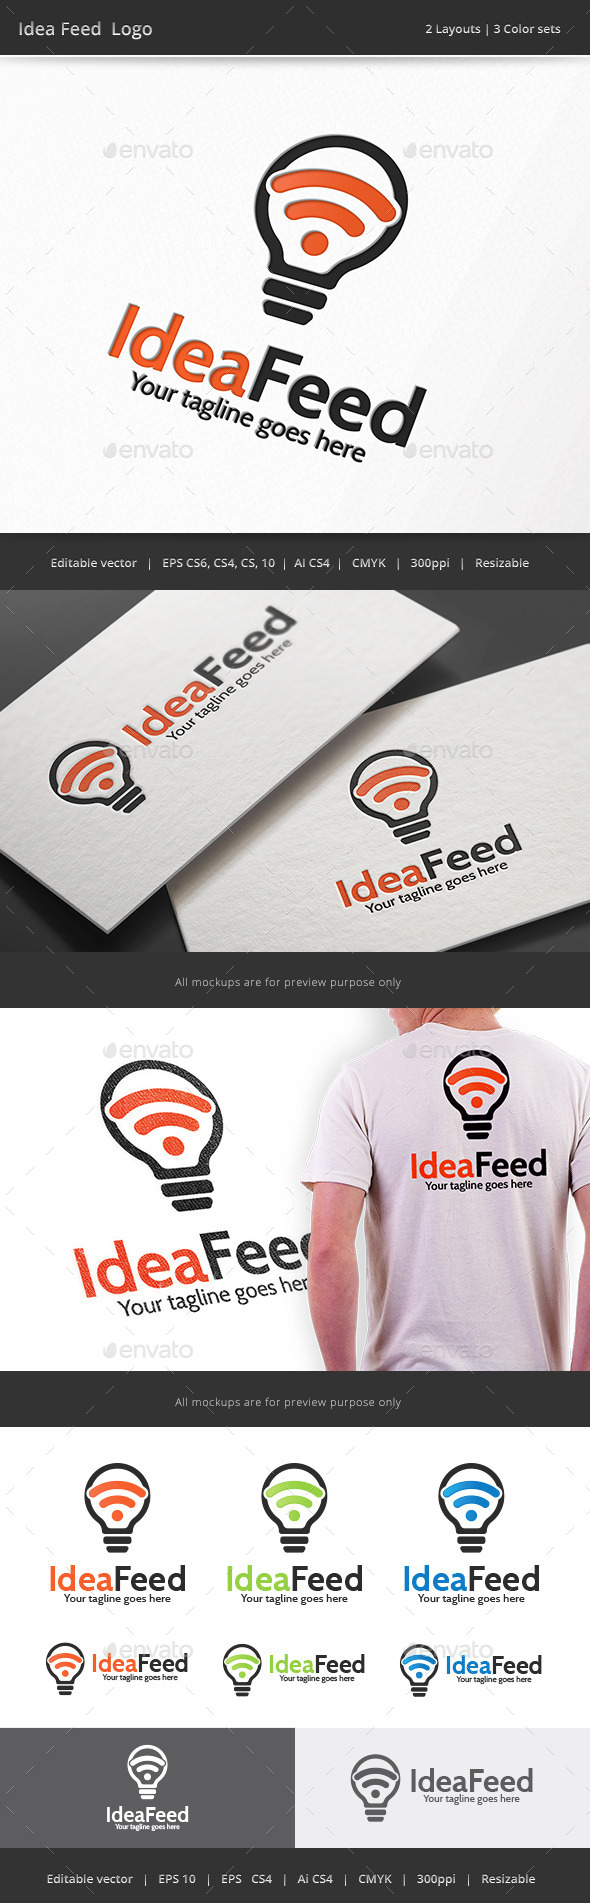 GraphicRiver Idea Feed Logo 10167616